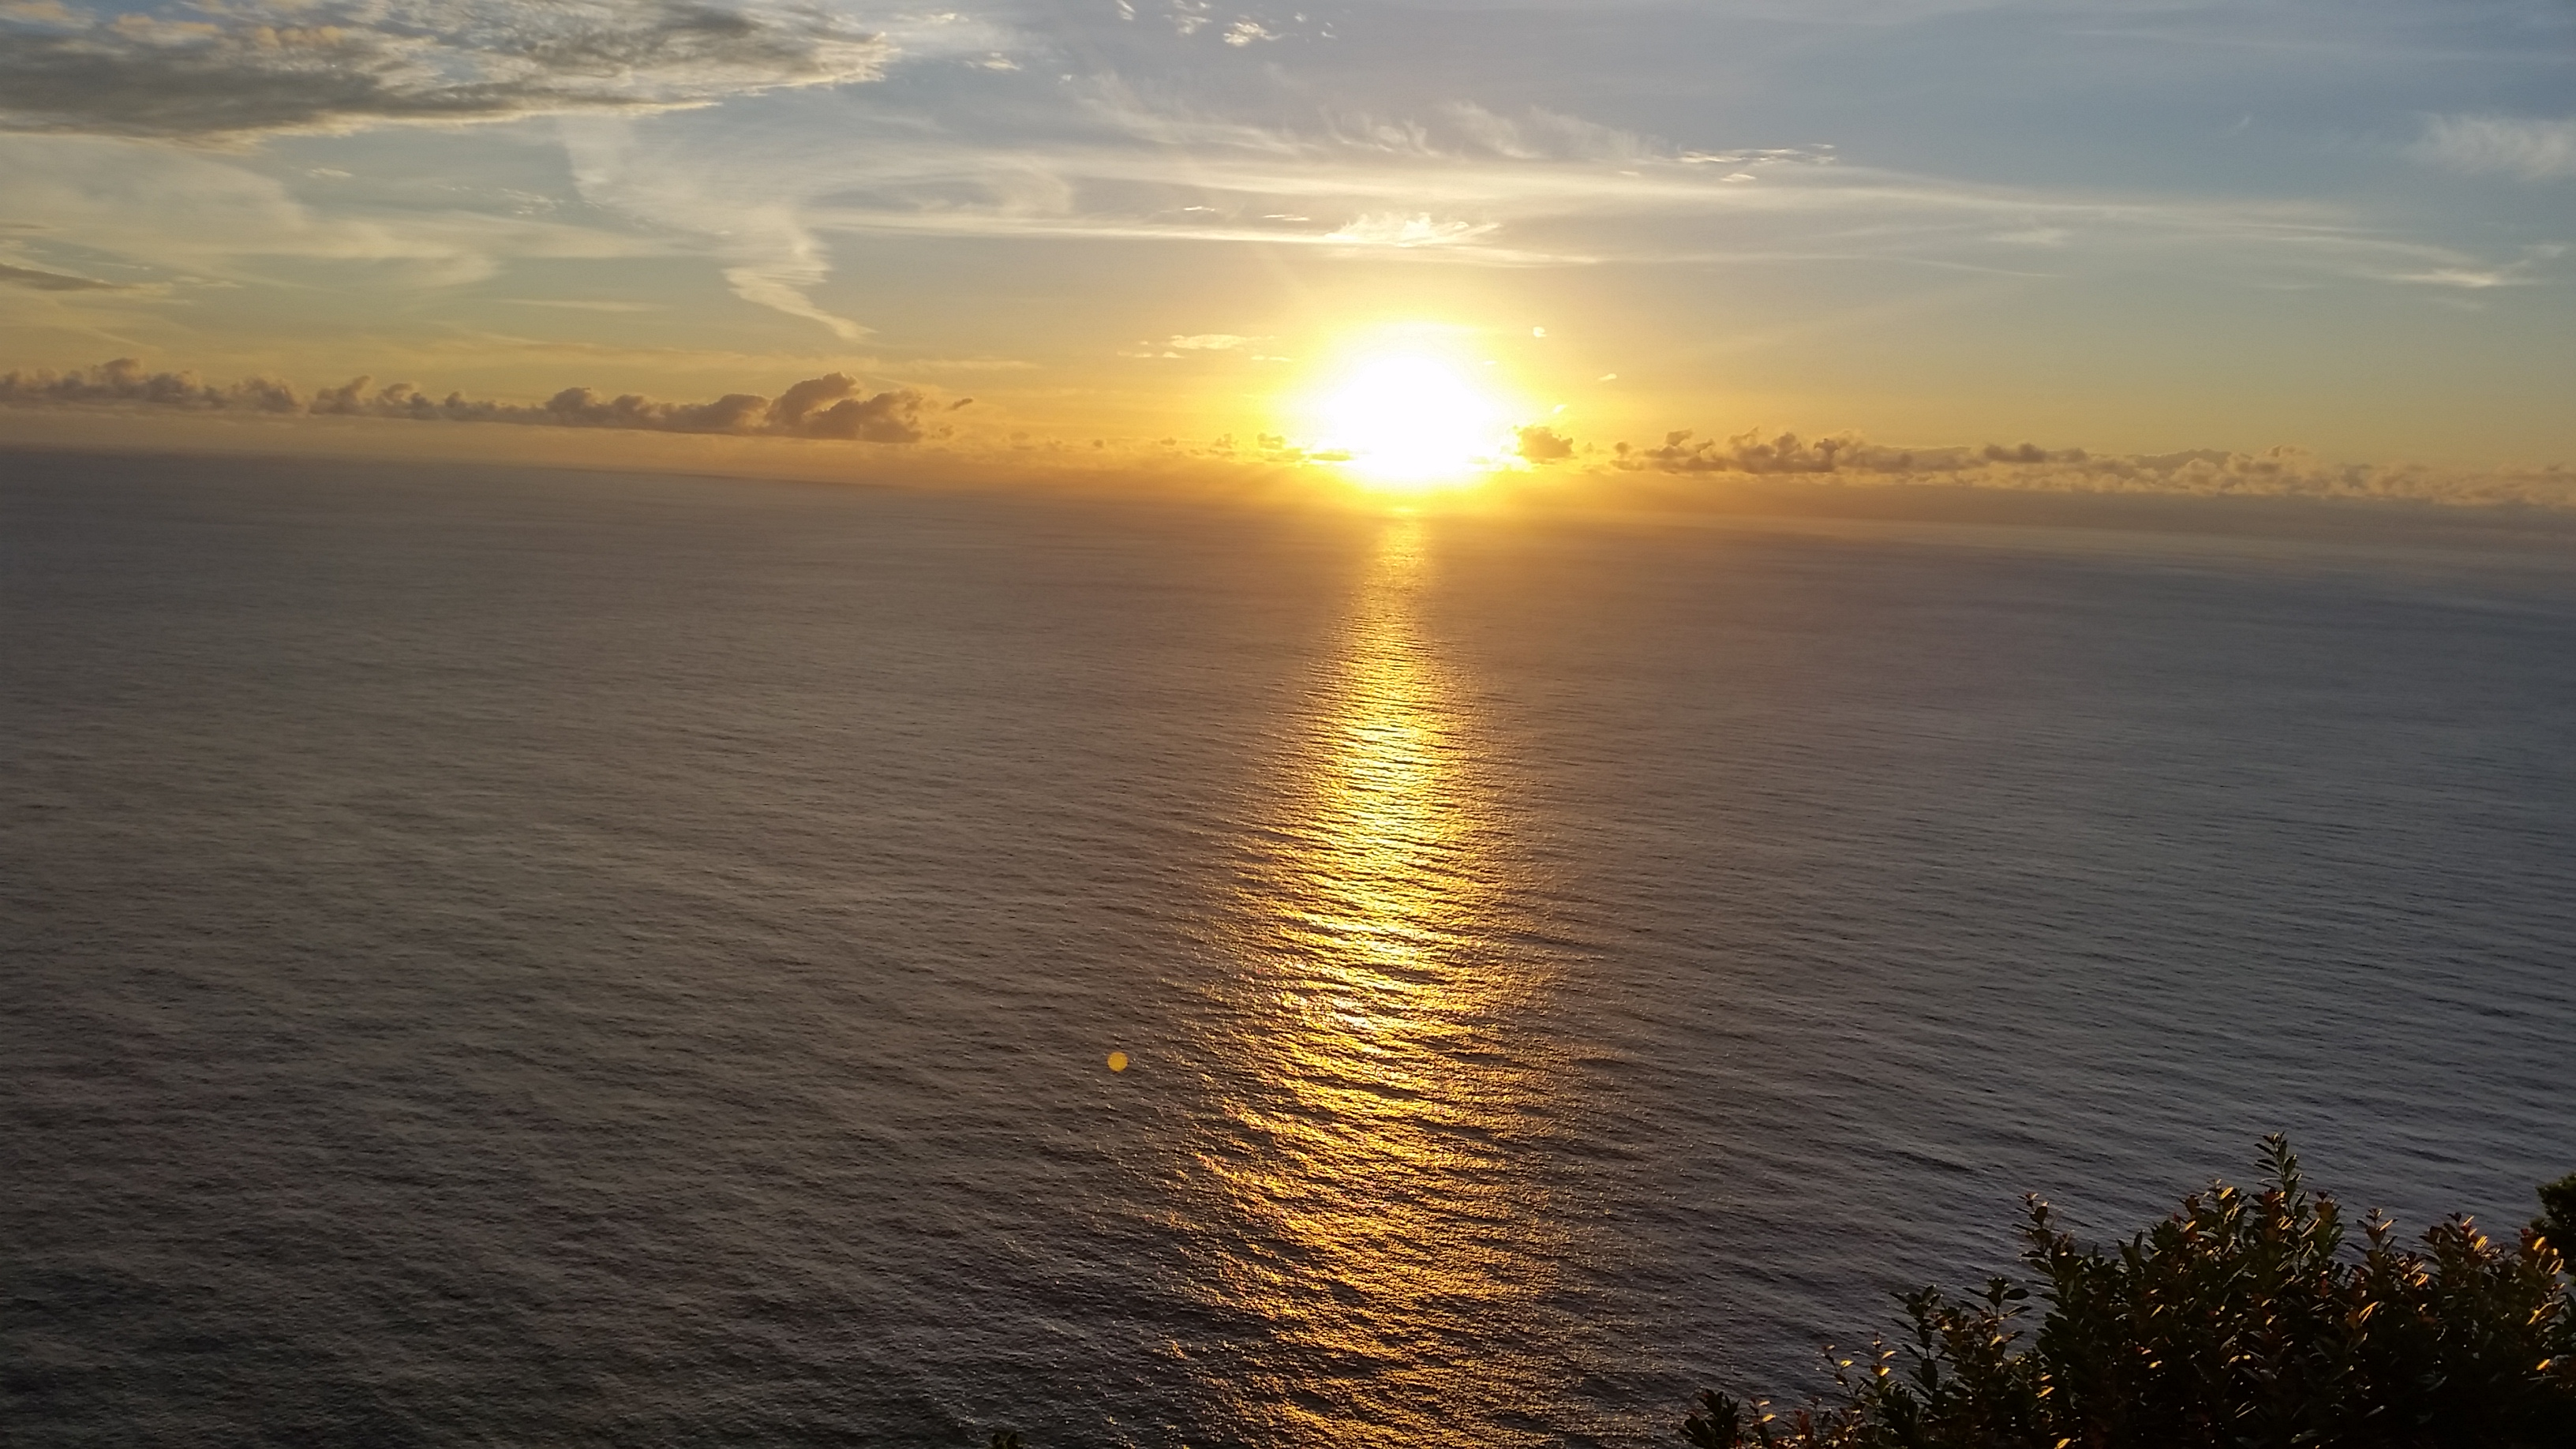 Sunrise at Ponta da Madrugada viewpoint